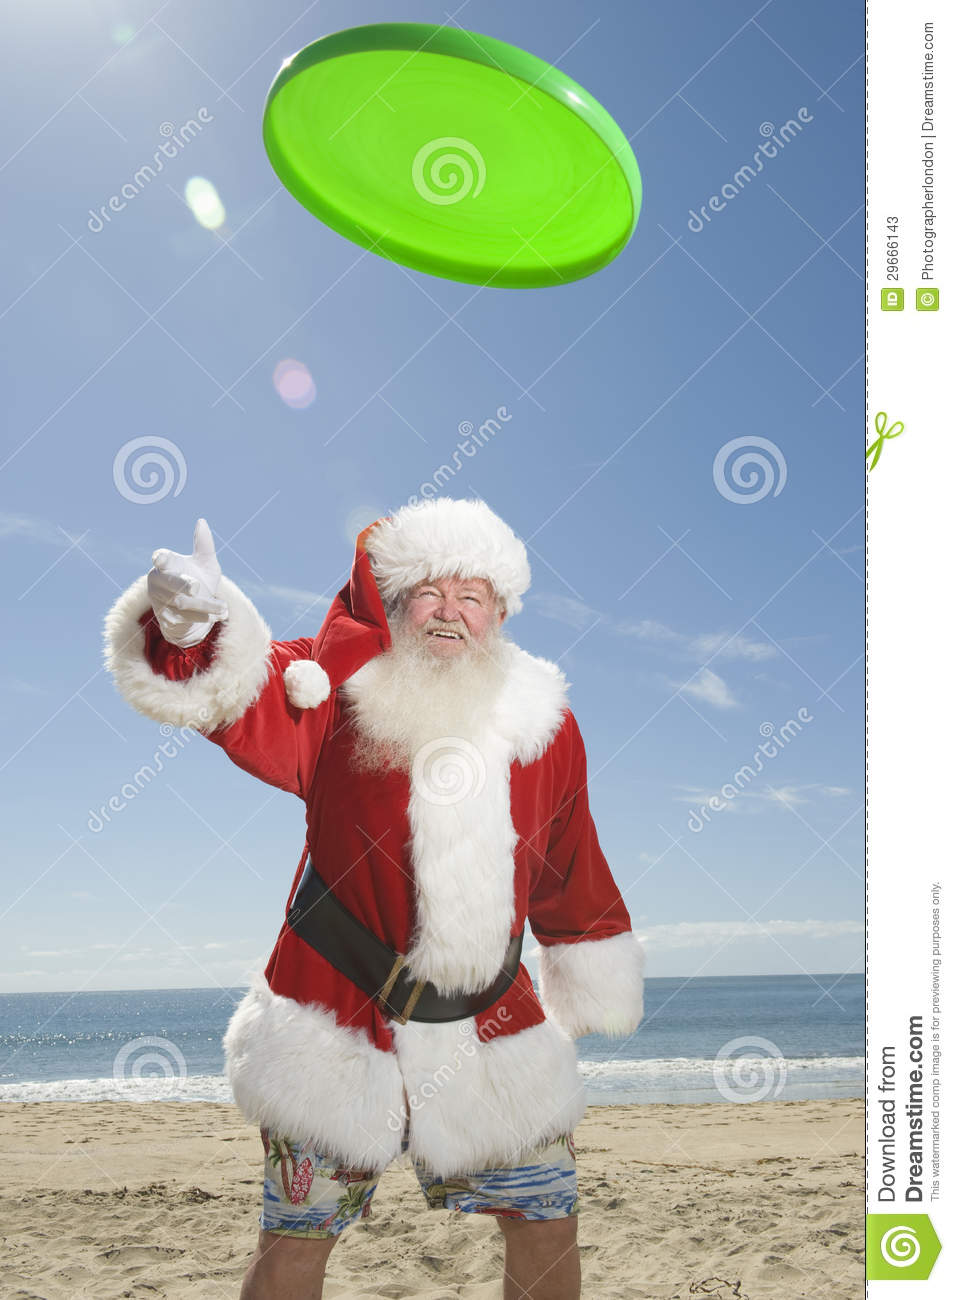 Santa Claus Playing With Flying Disc